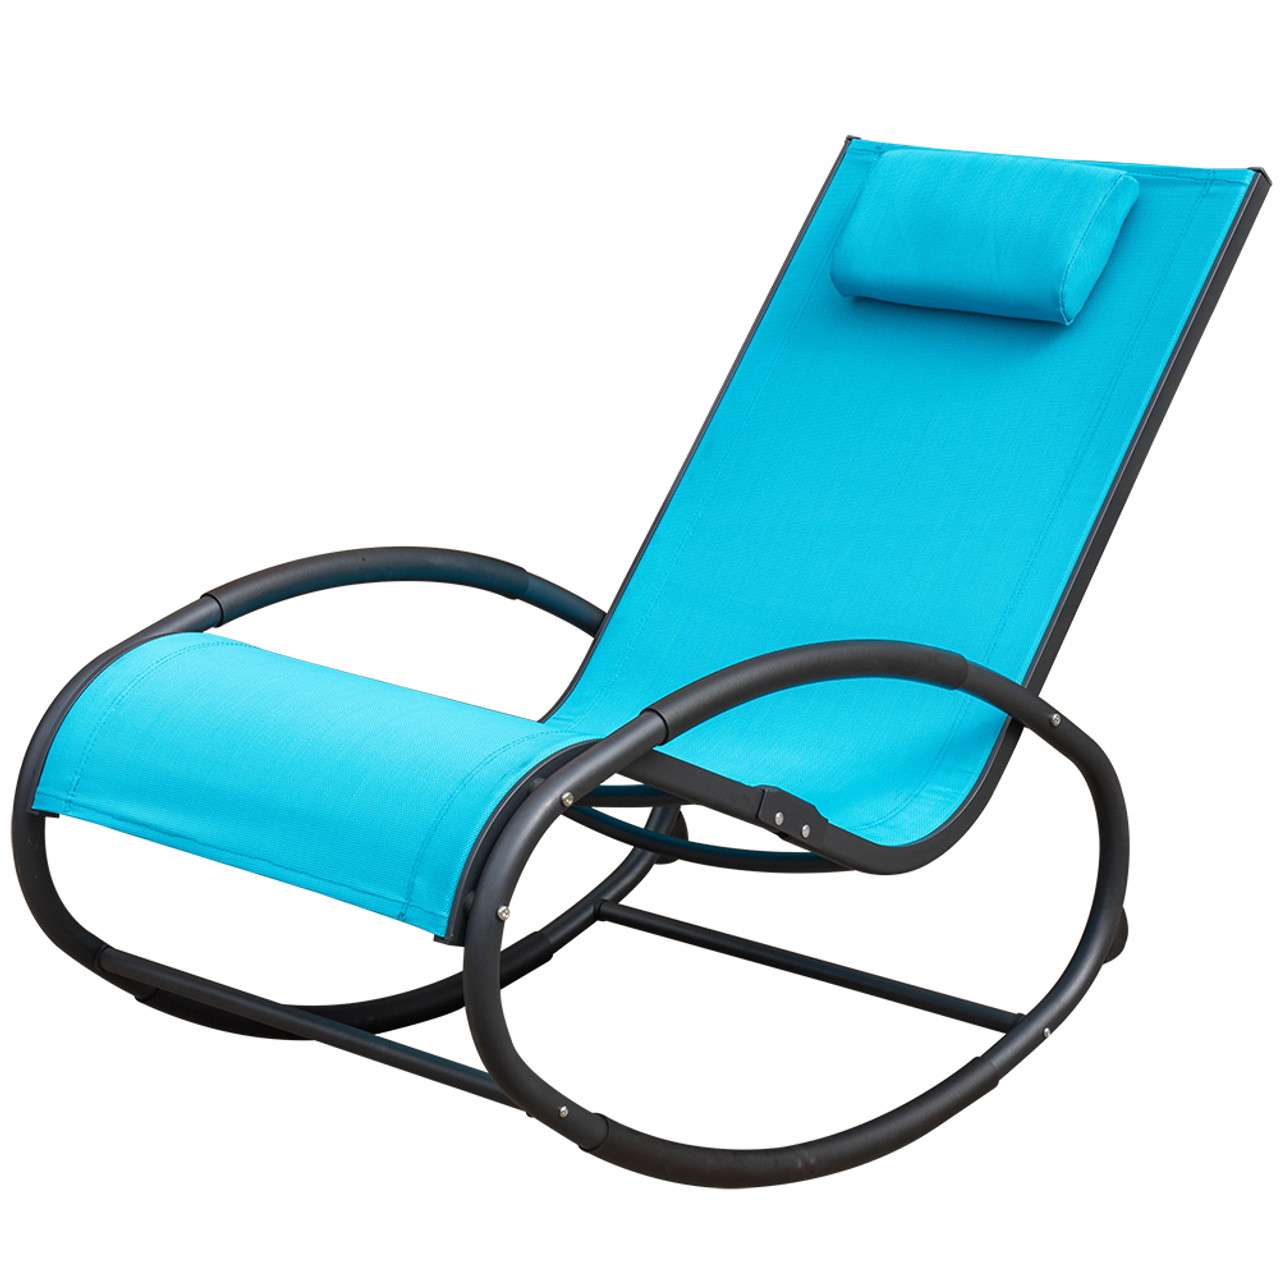 Patio gravity chair - Patio Aluminum Zero Gravity Chair Orbital Rocking Lounge Chair With Pillow Capacity 250 Pounds Blue